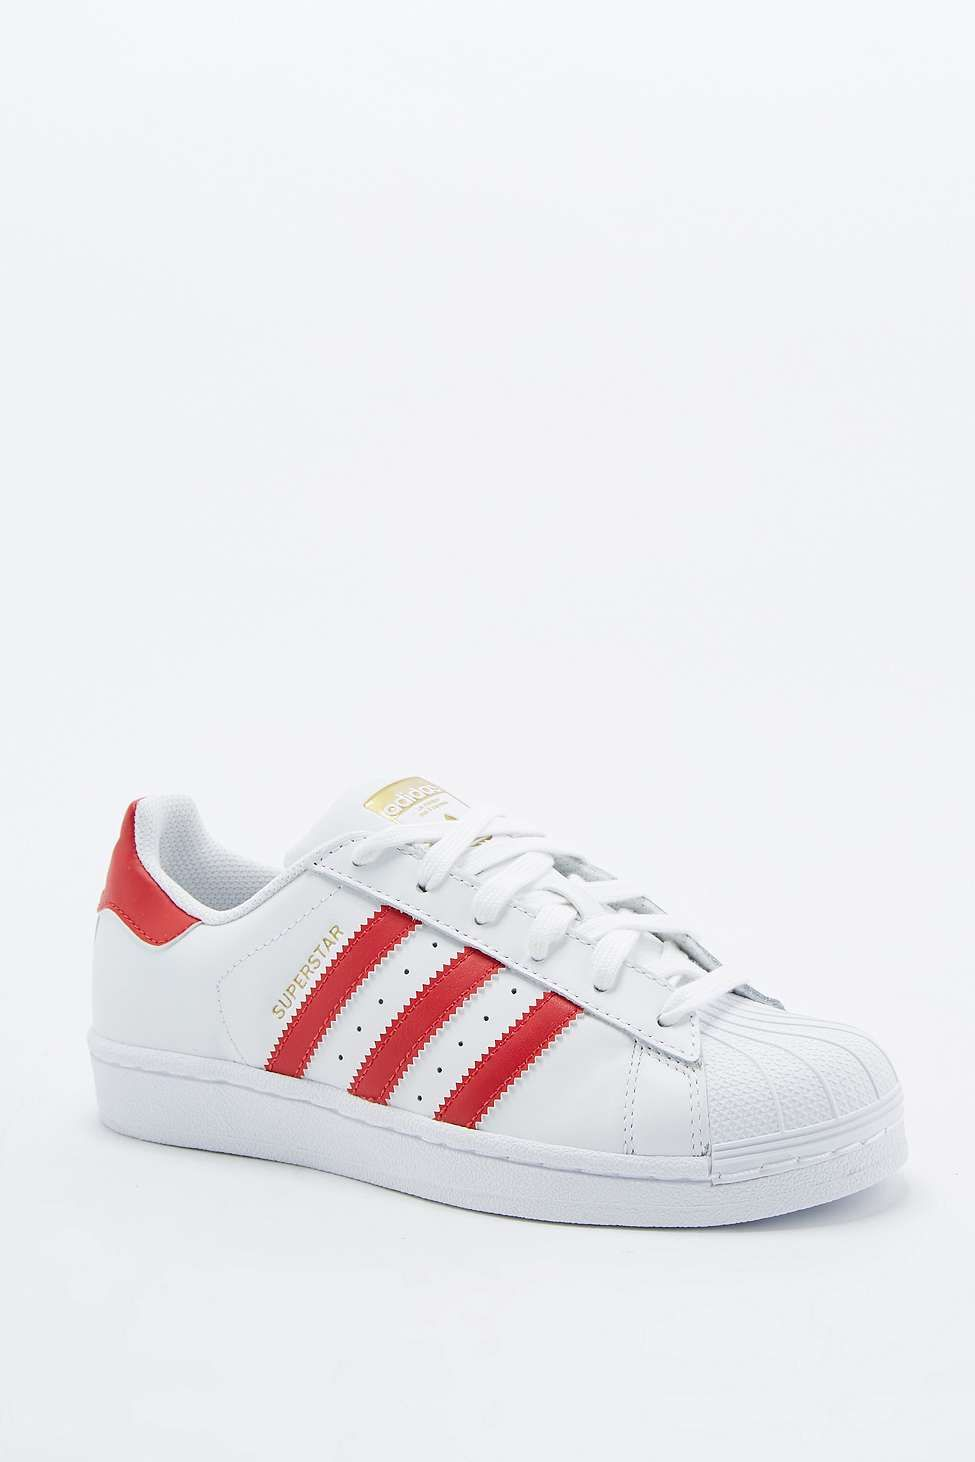 promo code aca81 3198c adidas Originals Superstar 80 s Red and White Trainers just got these and  they re epic!!!